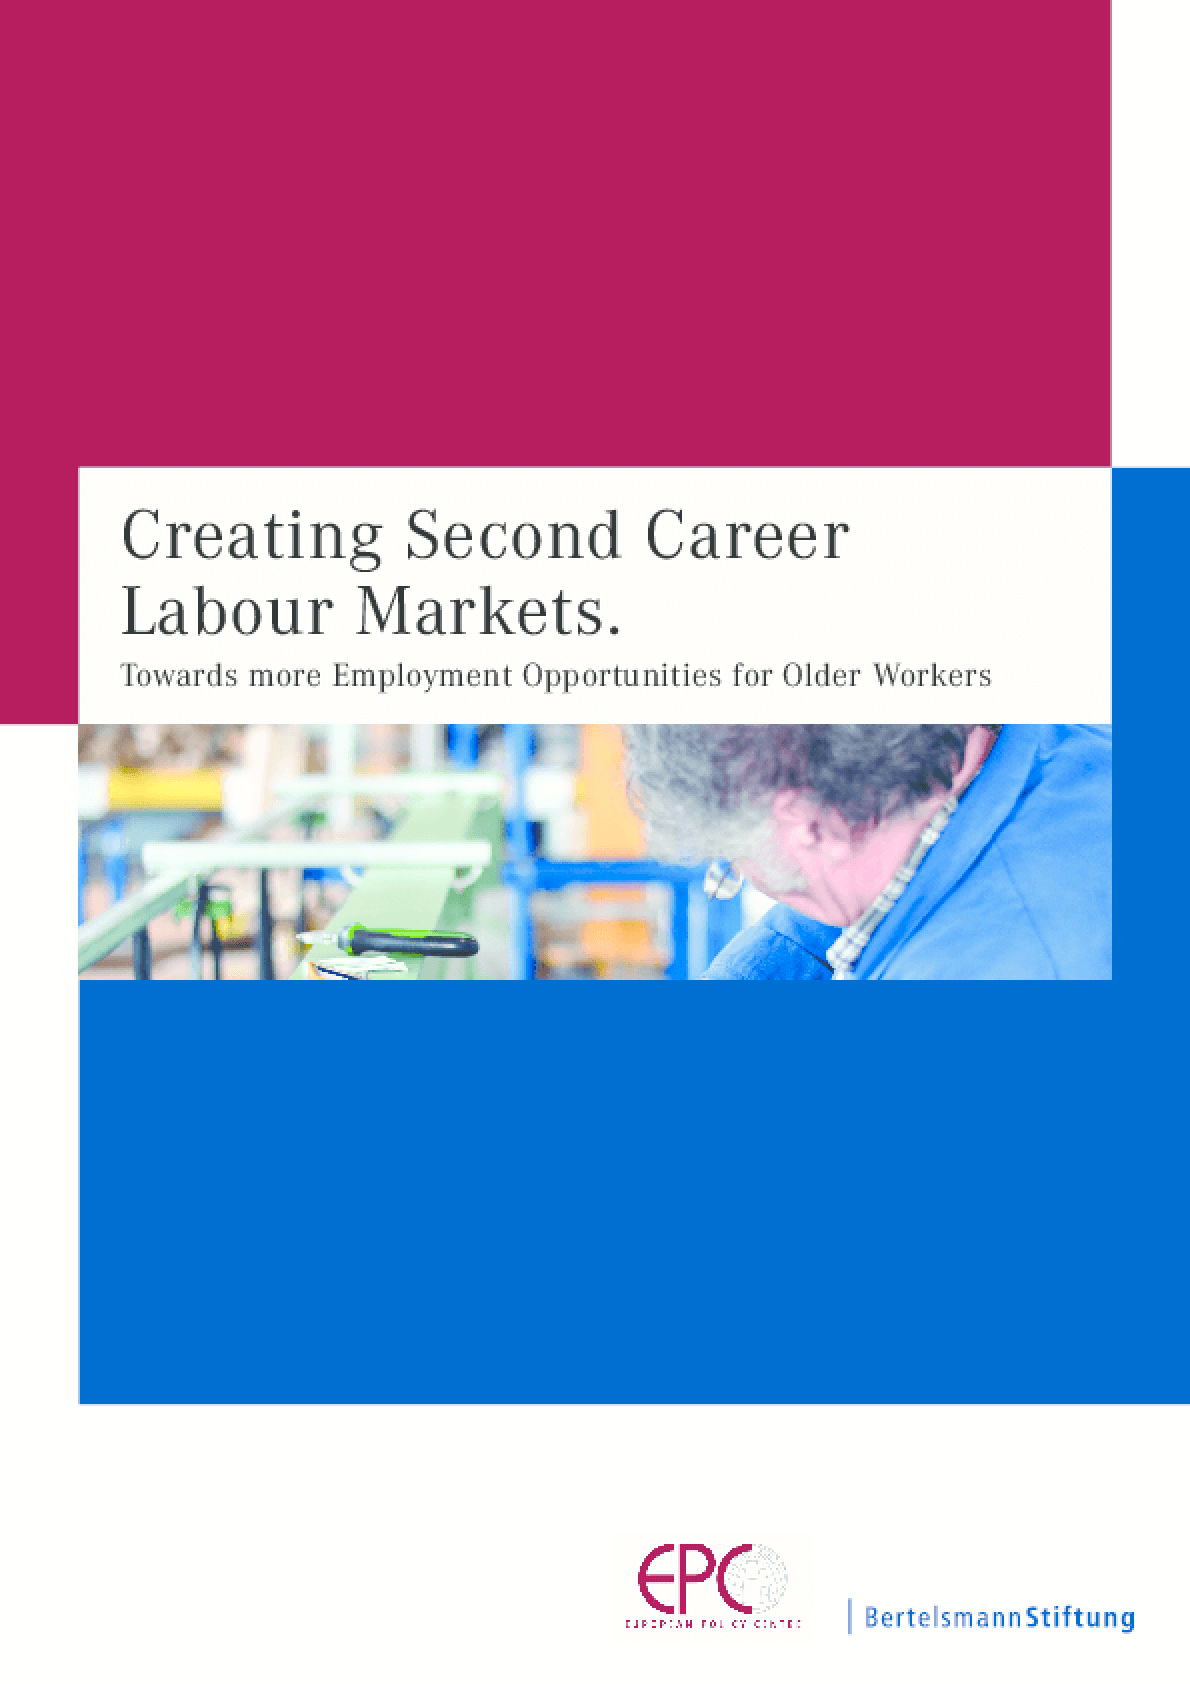 Creating Second Career Labour Markets: Towards more Employment Opportunities for Older Workers